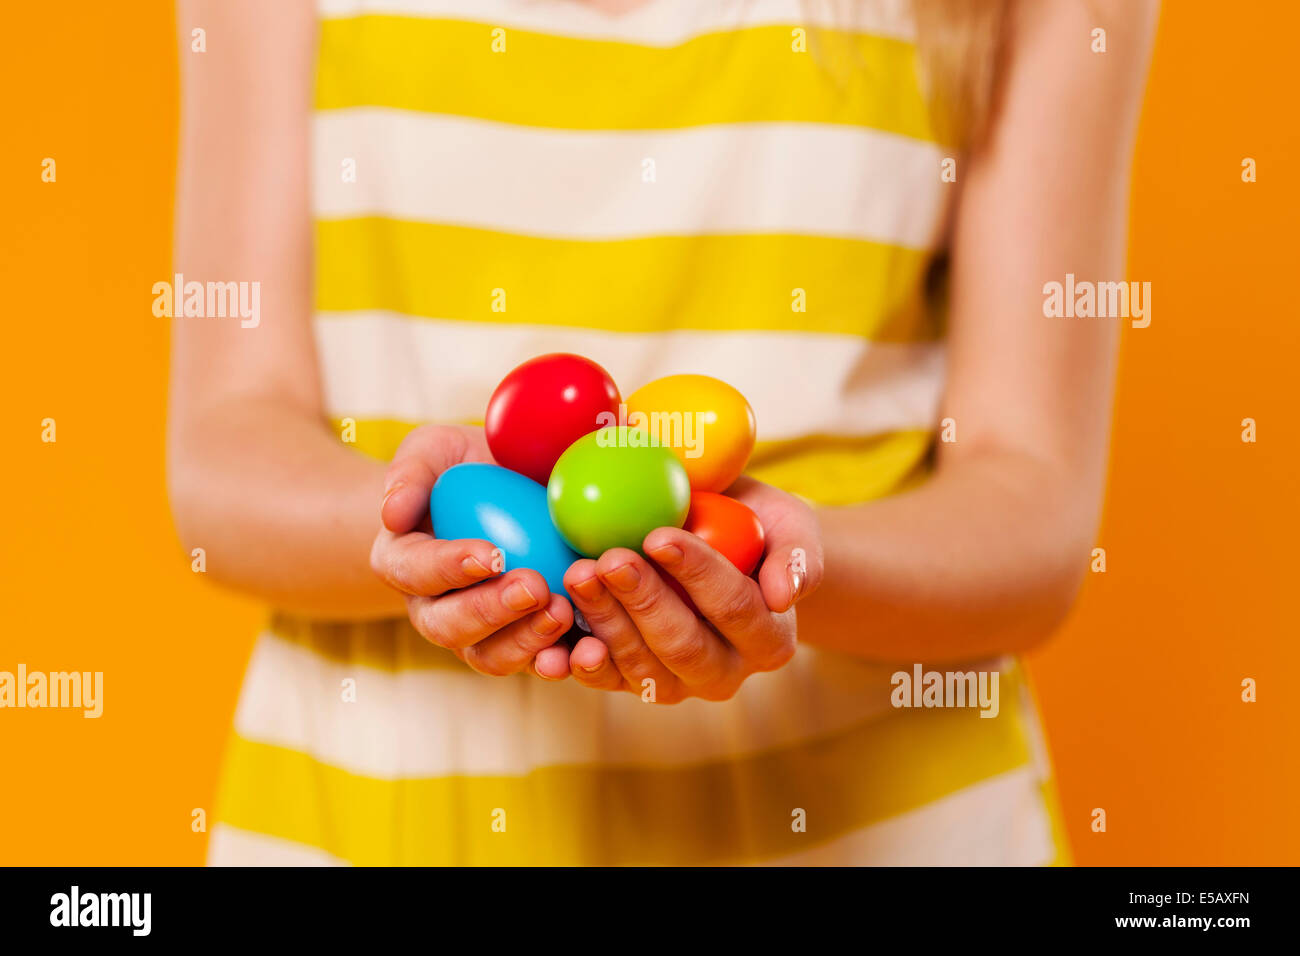 Close-up of multi colored Easter egg in hands Debica, Poland - Stock Image